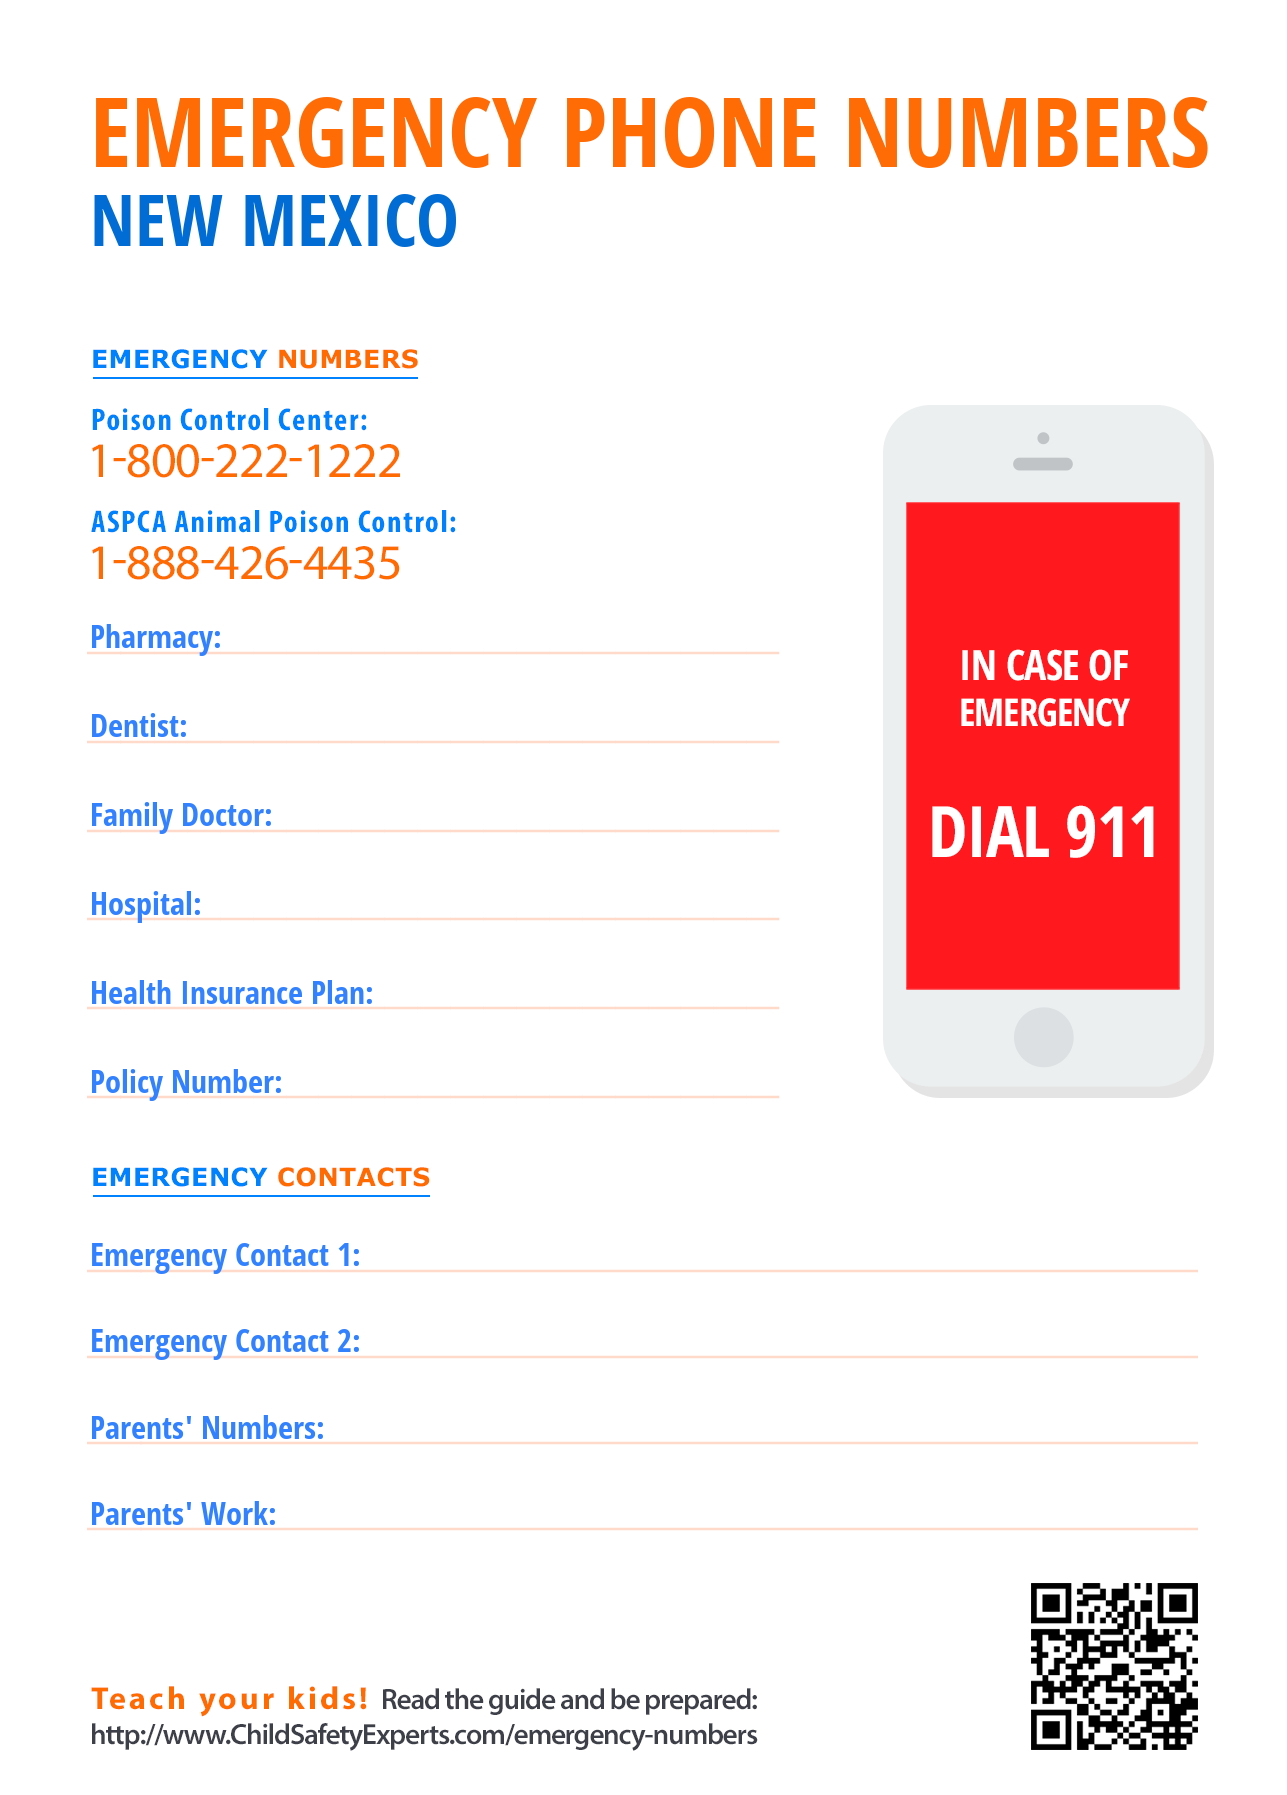 Important emergency phone numbers in New Mexico